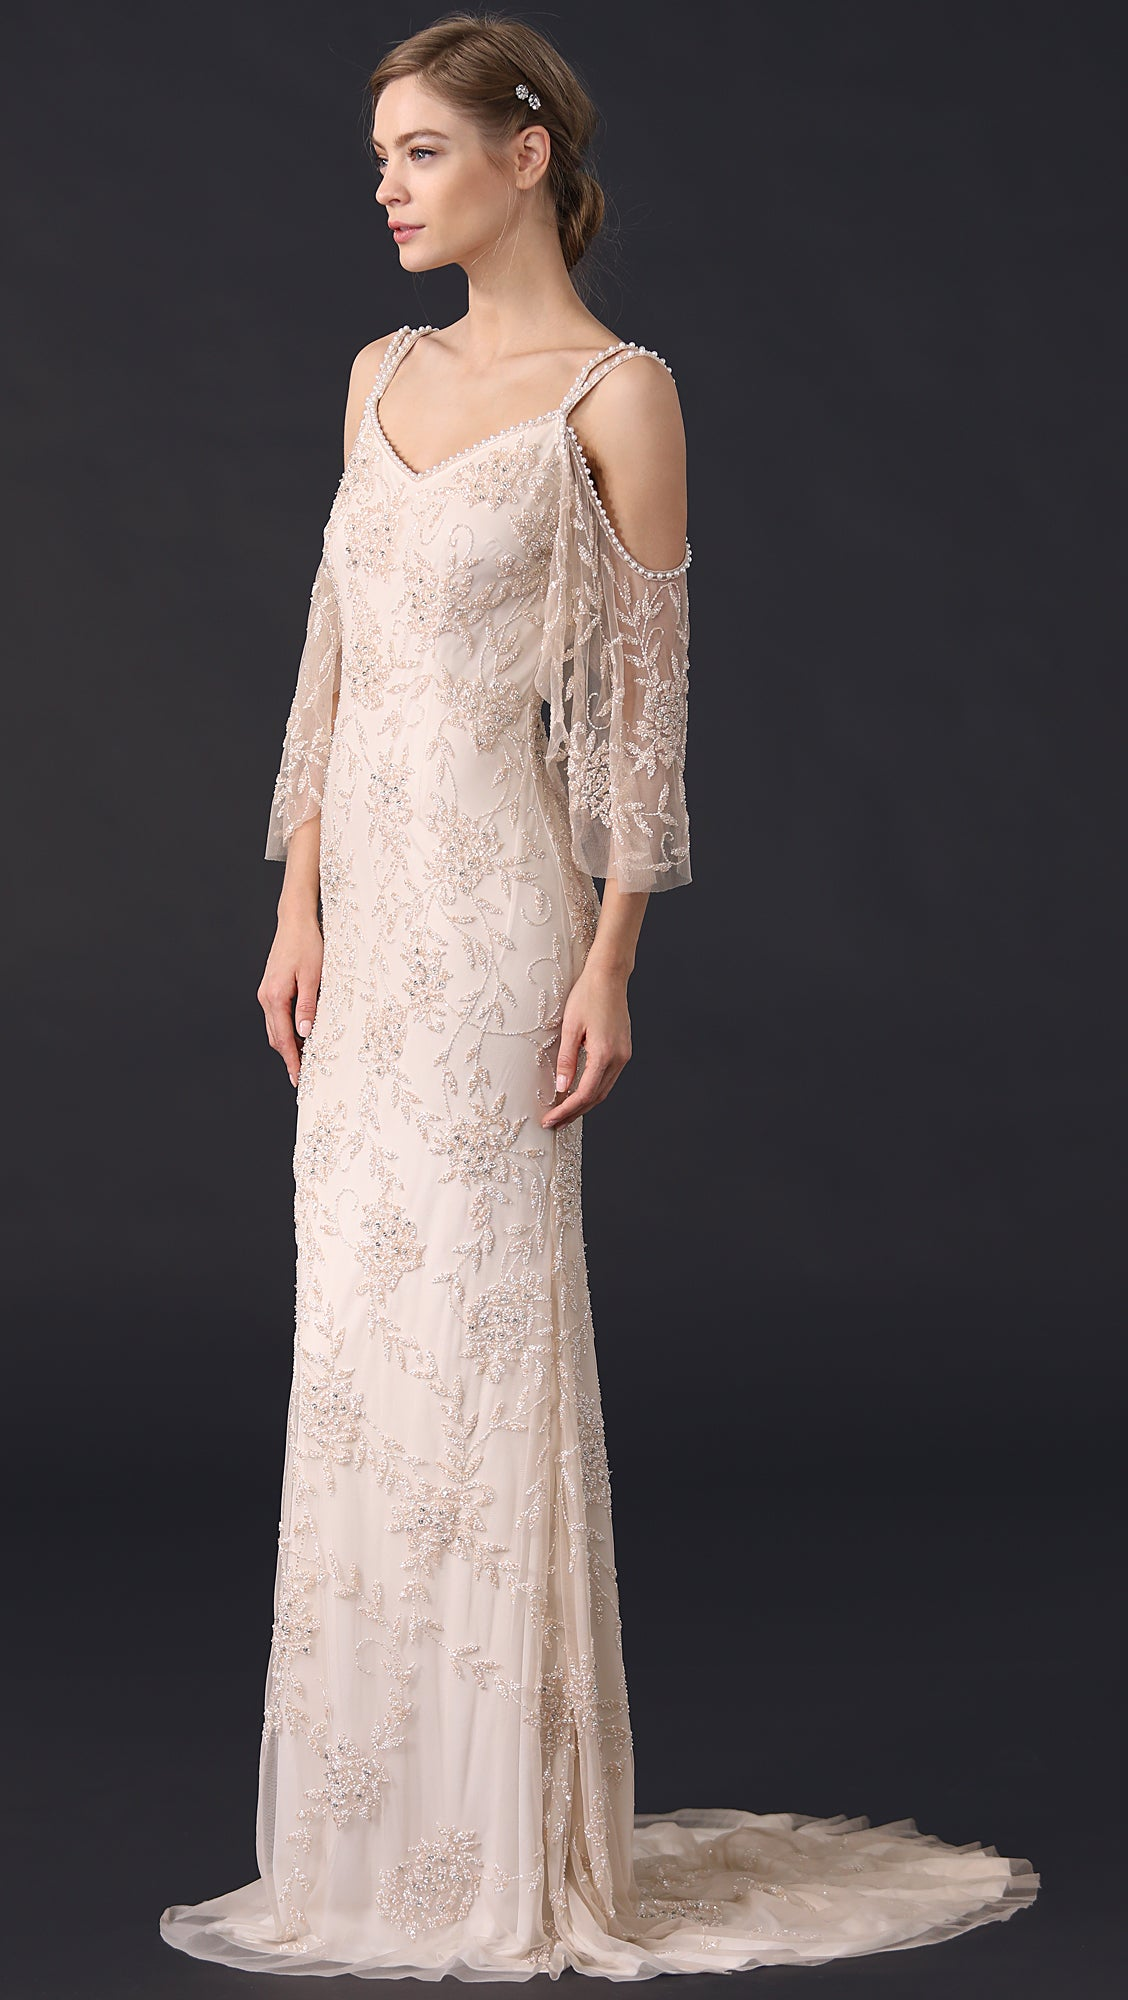 Blush Wedding Dress.Theia Layla 890425 Blush Wedding Gown